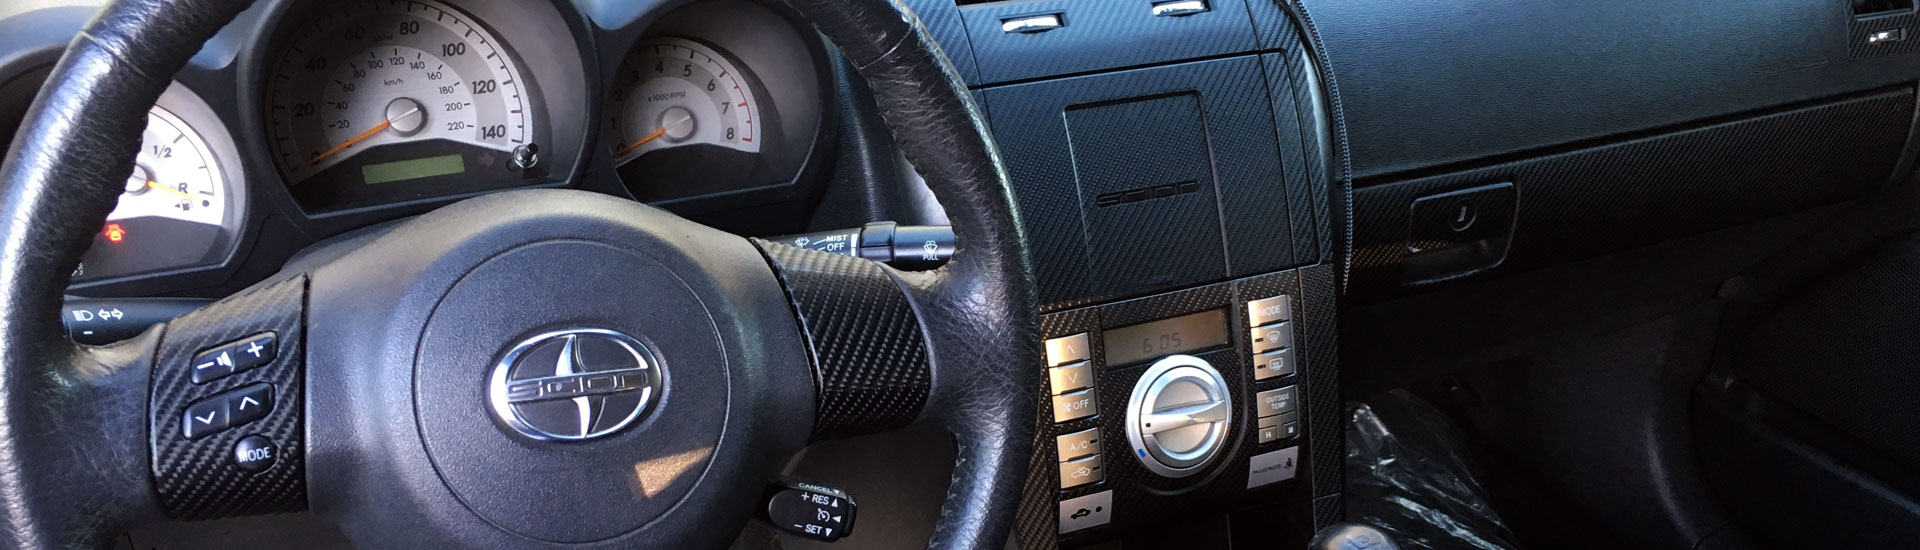 2010 Scion tC Dash Kits